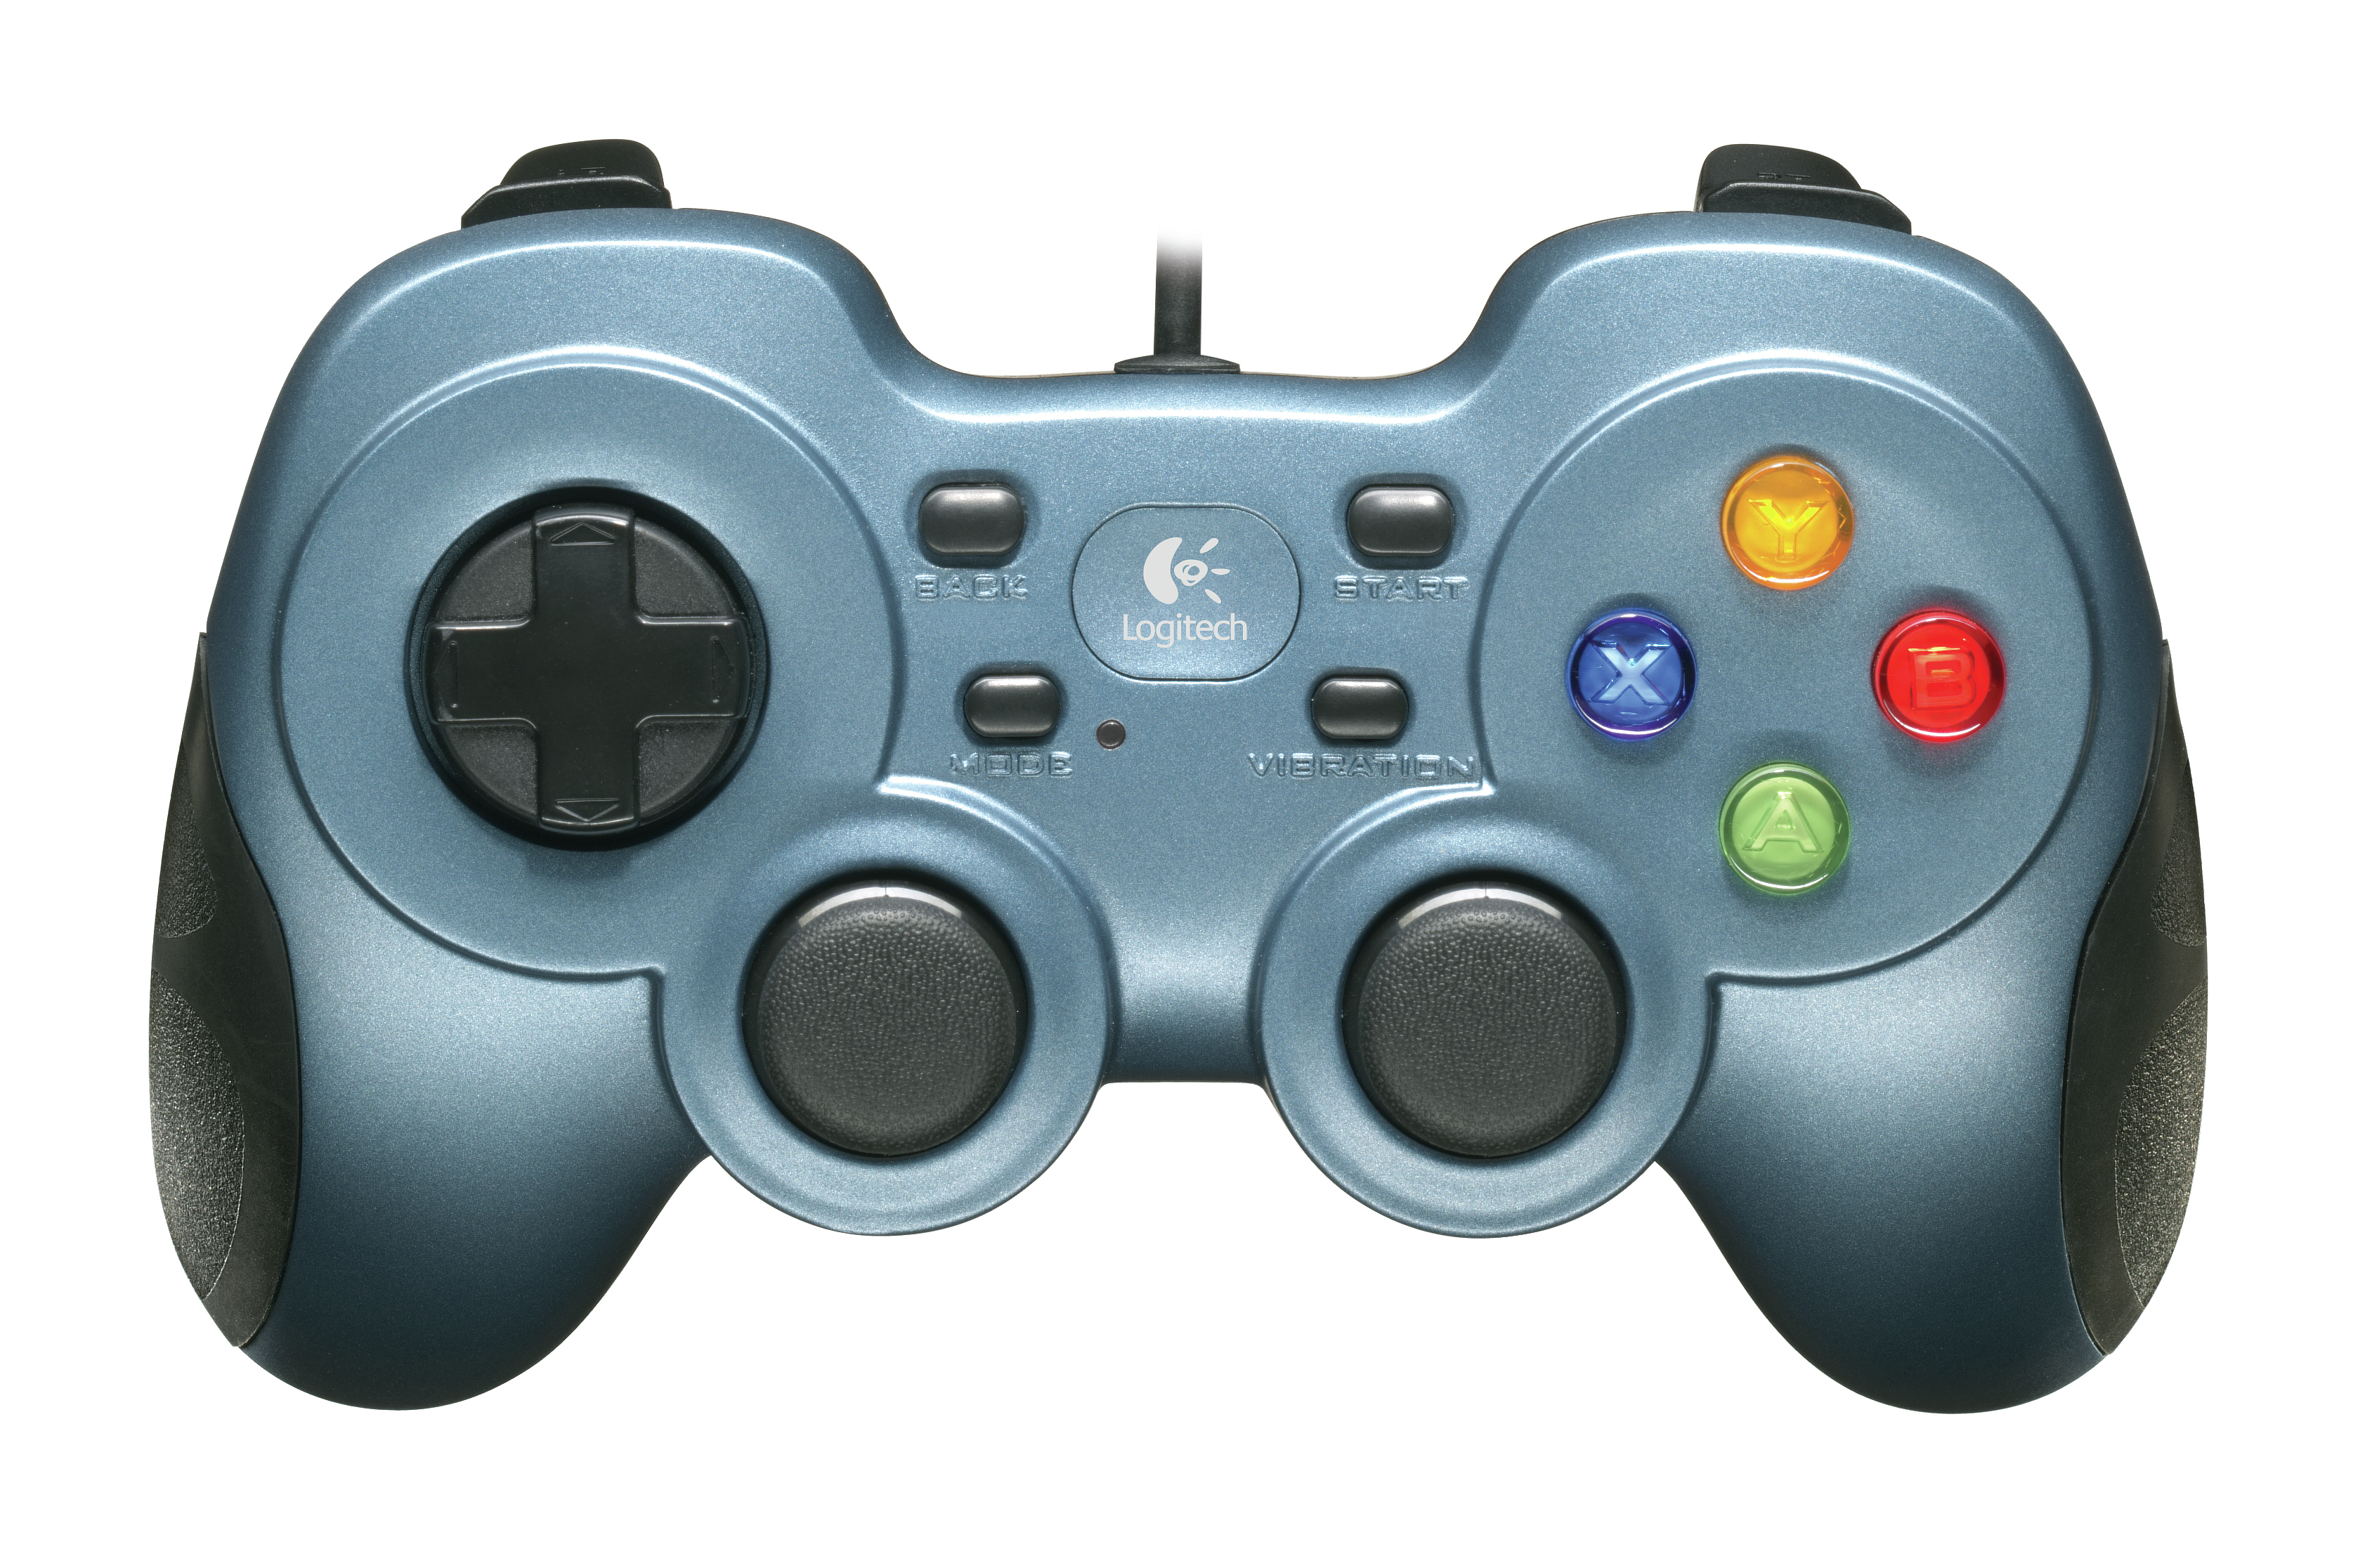 New Logitech Gamepads Bring The Console Gaming Experience To Pc - Logitech Controller F310 Usb Wiring Diagram